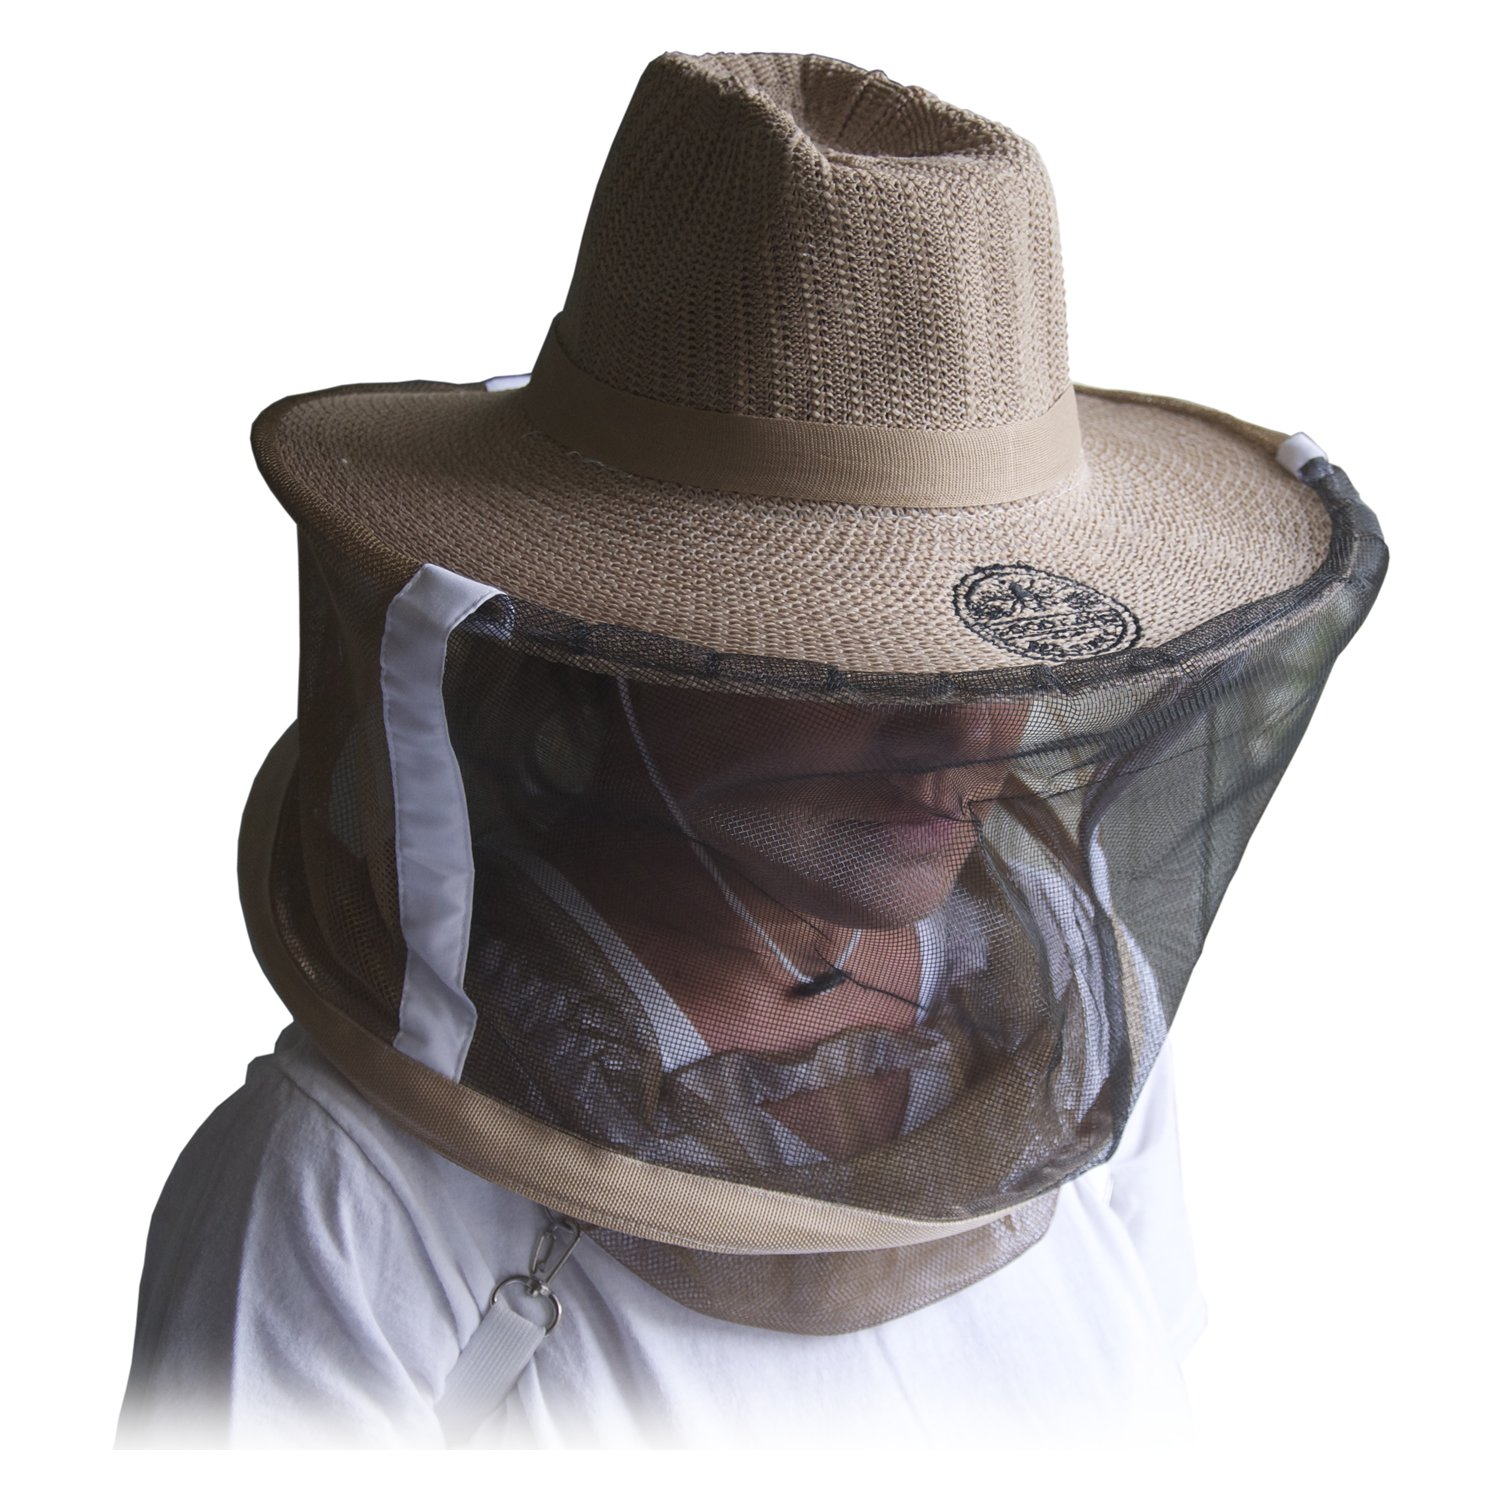 Natural Cotton Medium / Large Professional Beekeeping Beekeepers Hat Veil for Bee Protection During Beehive Maintenance by Goodland Bee Supply by Goodland Bee Supply®